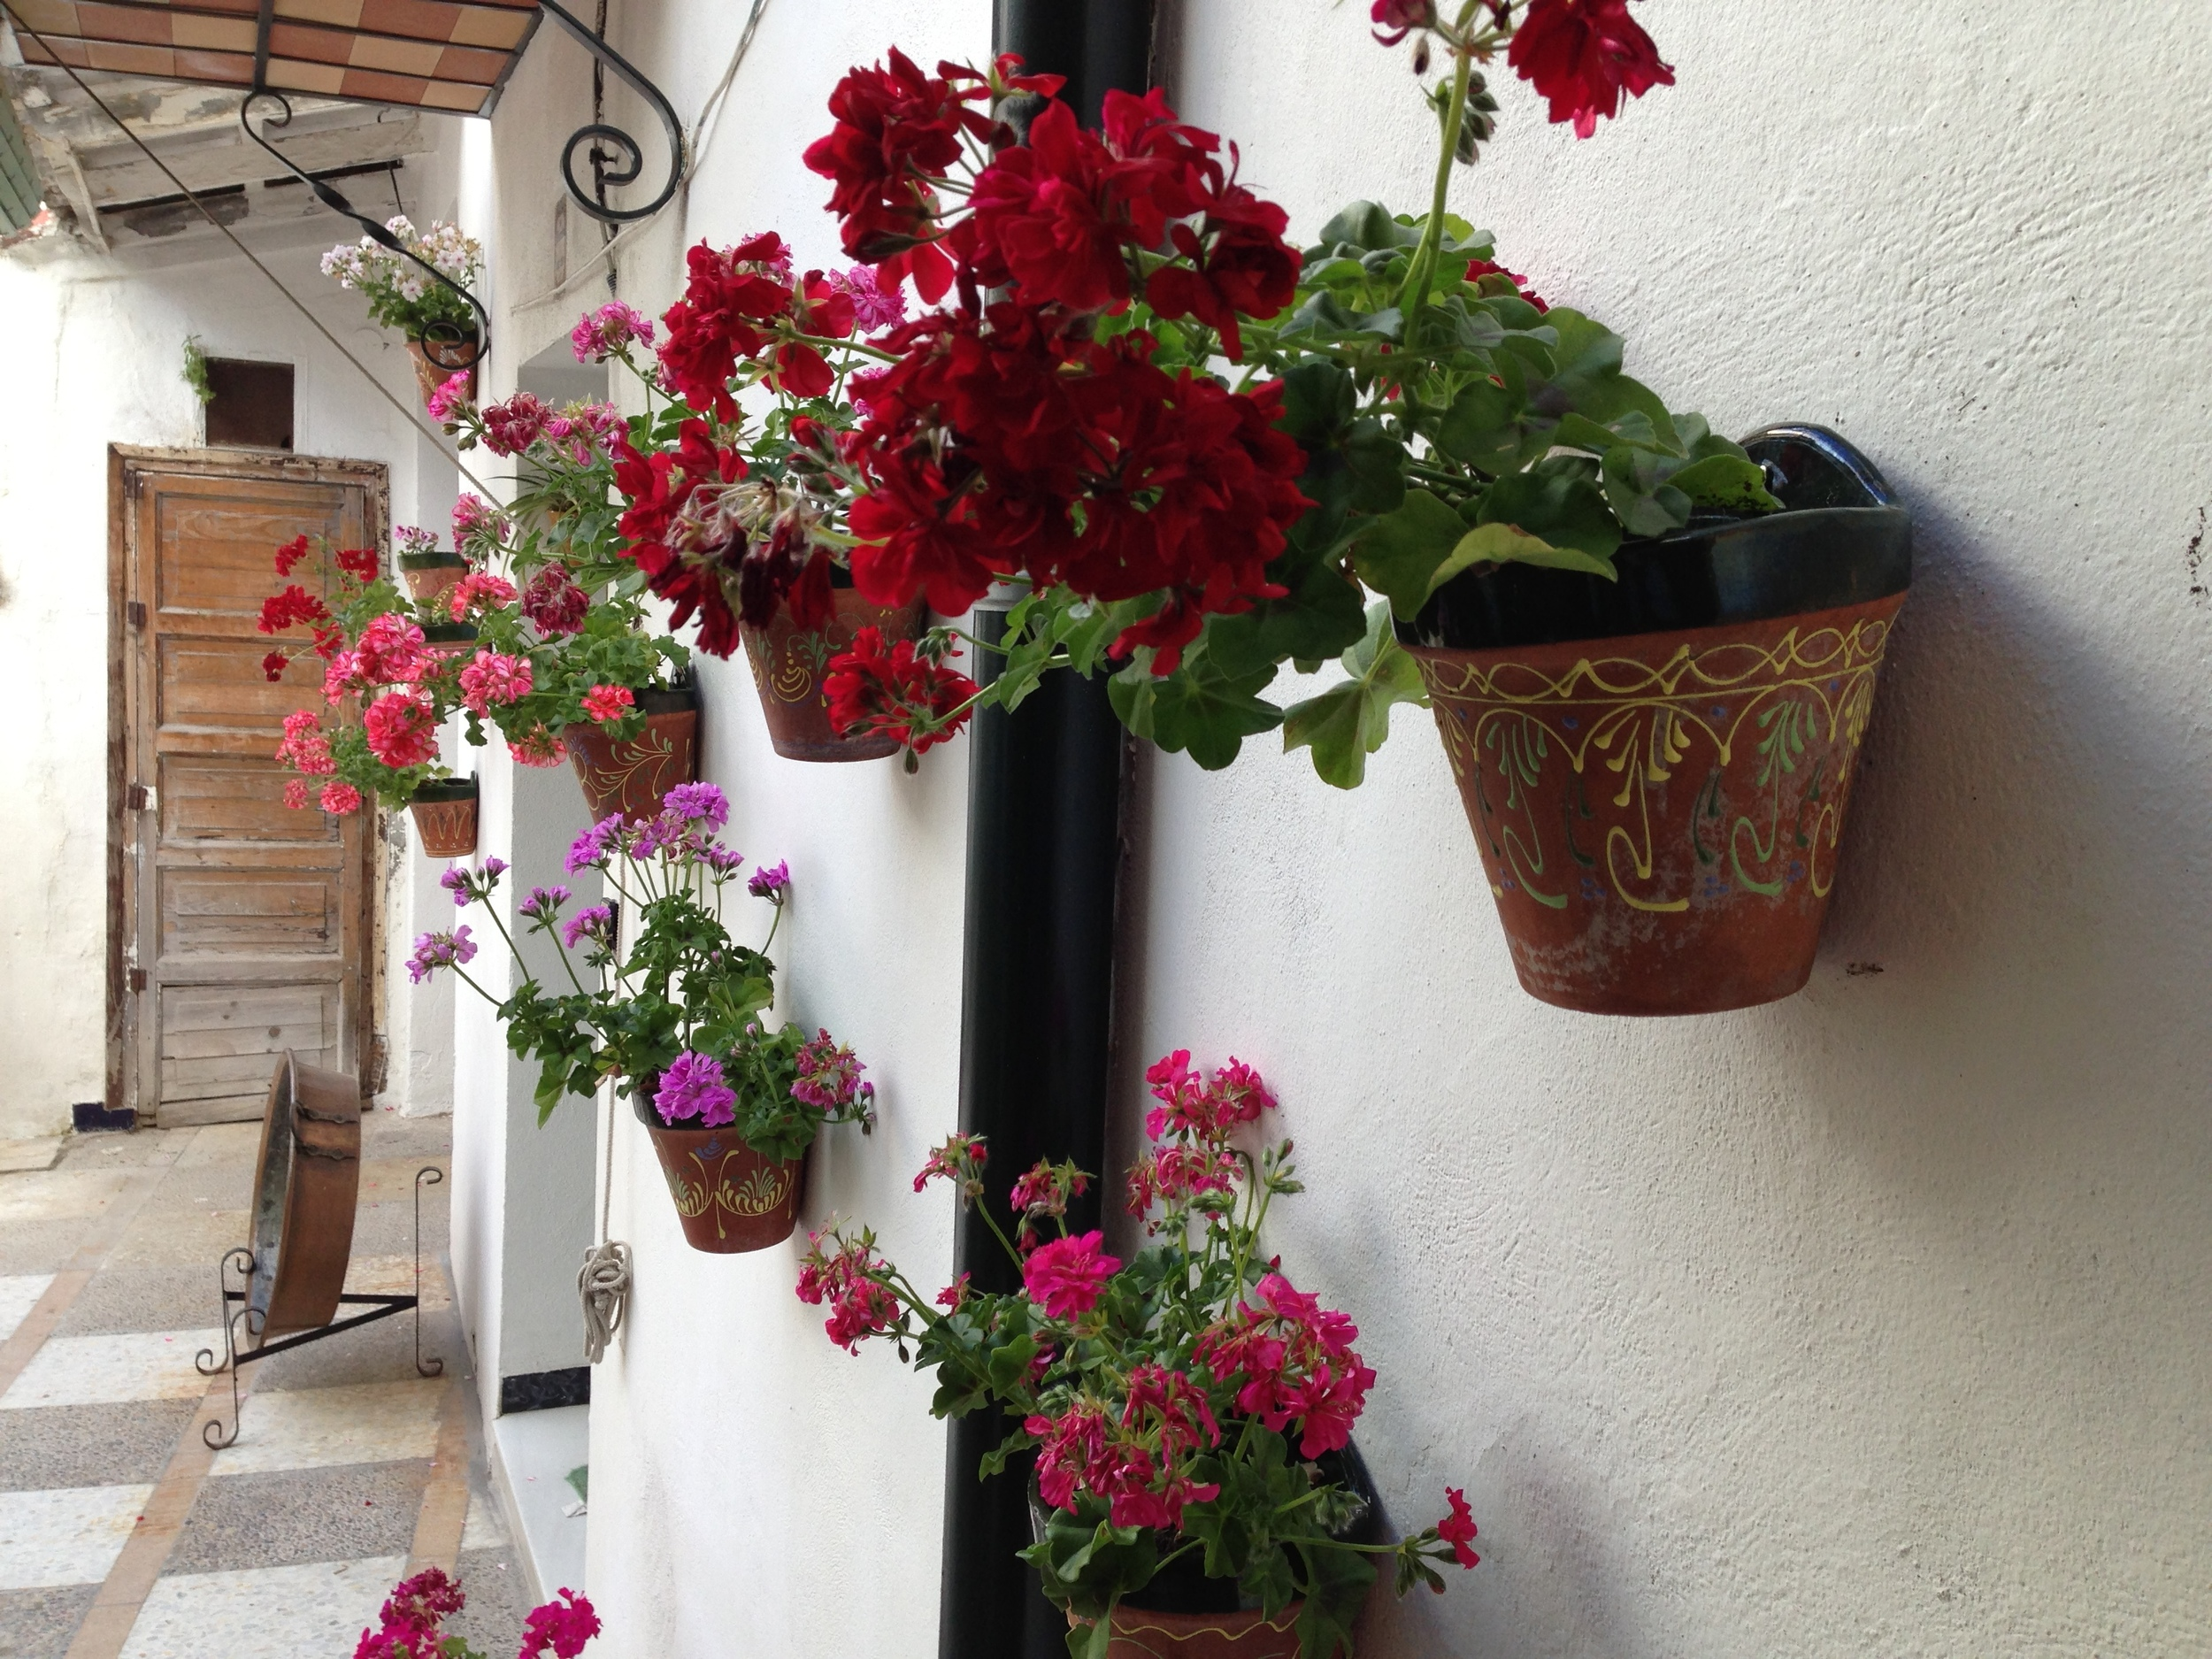 Flowers on the patio